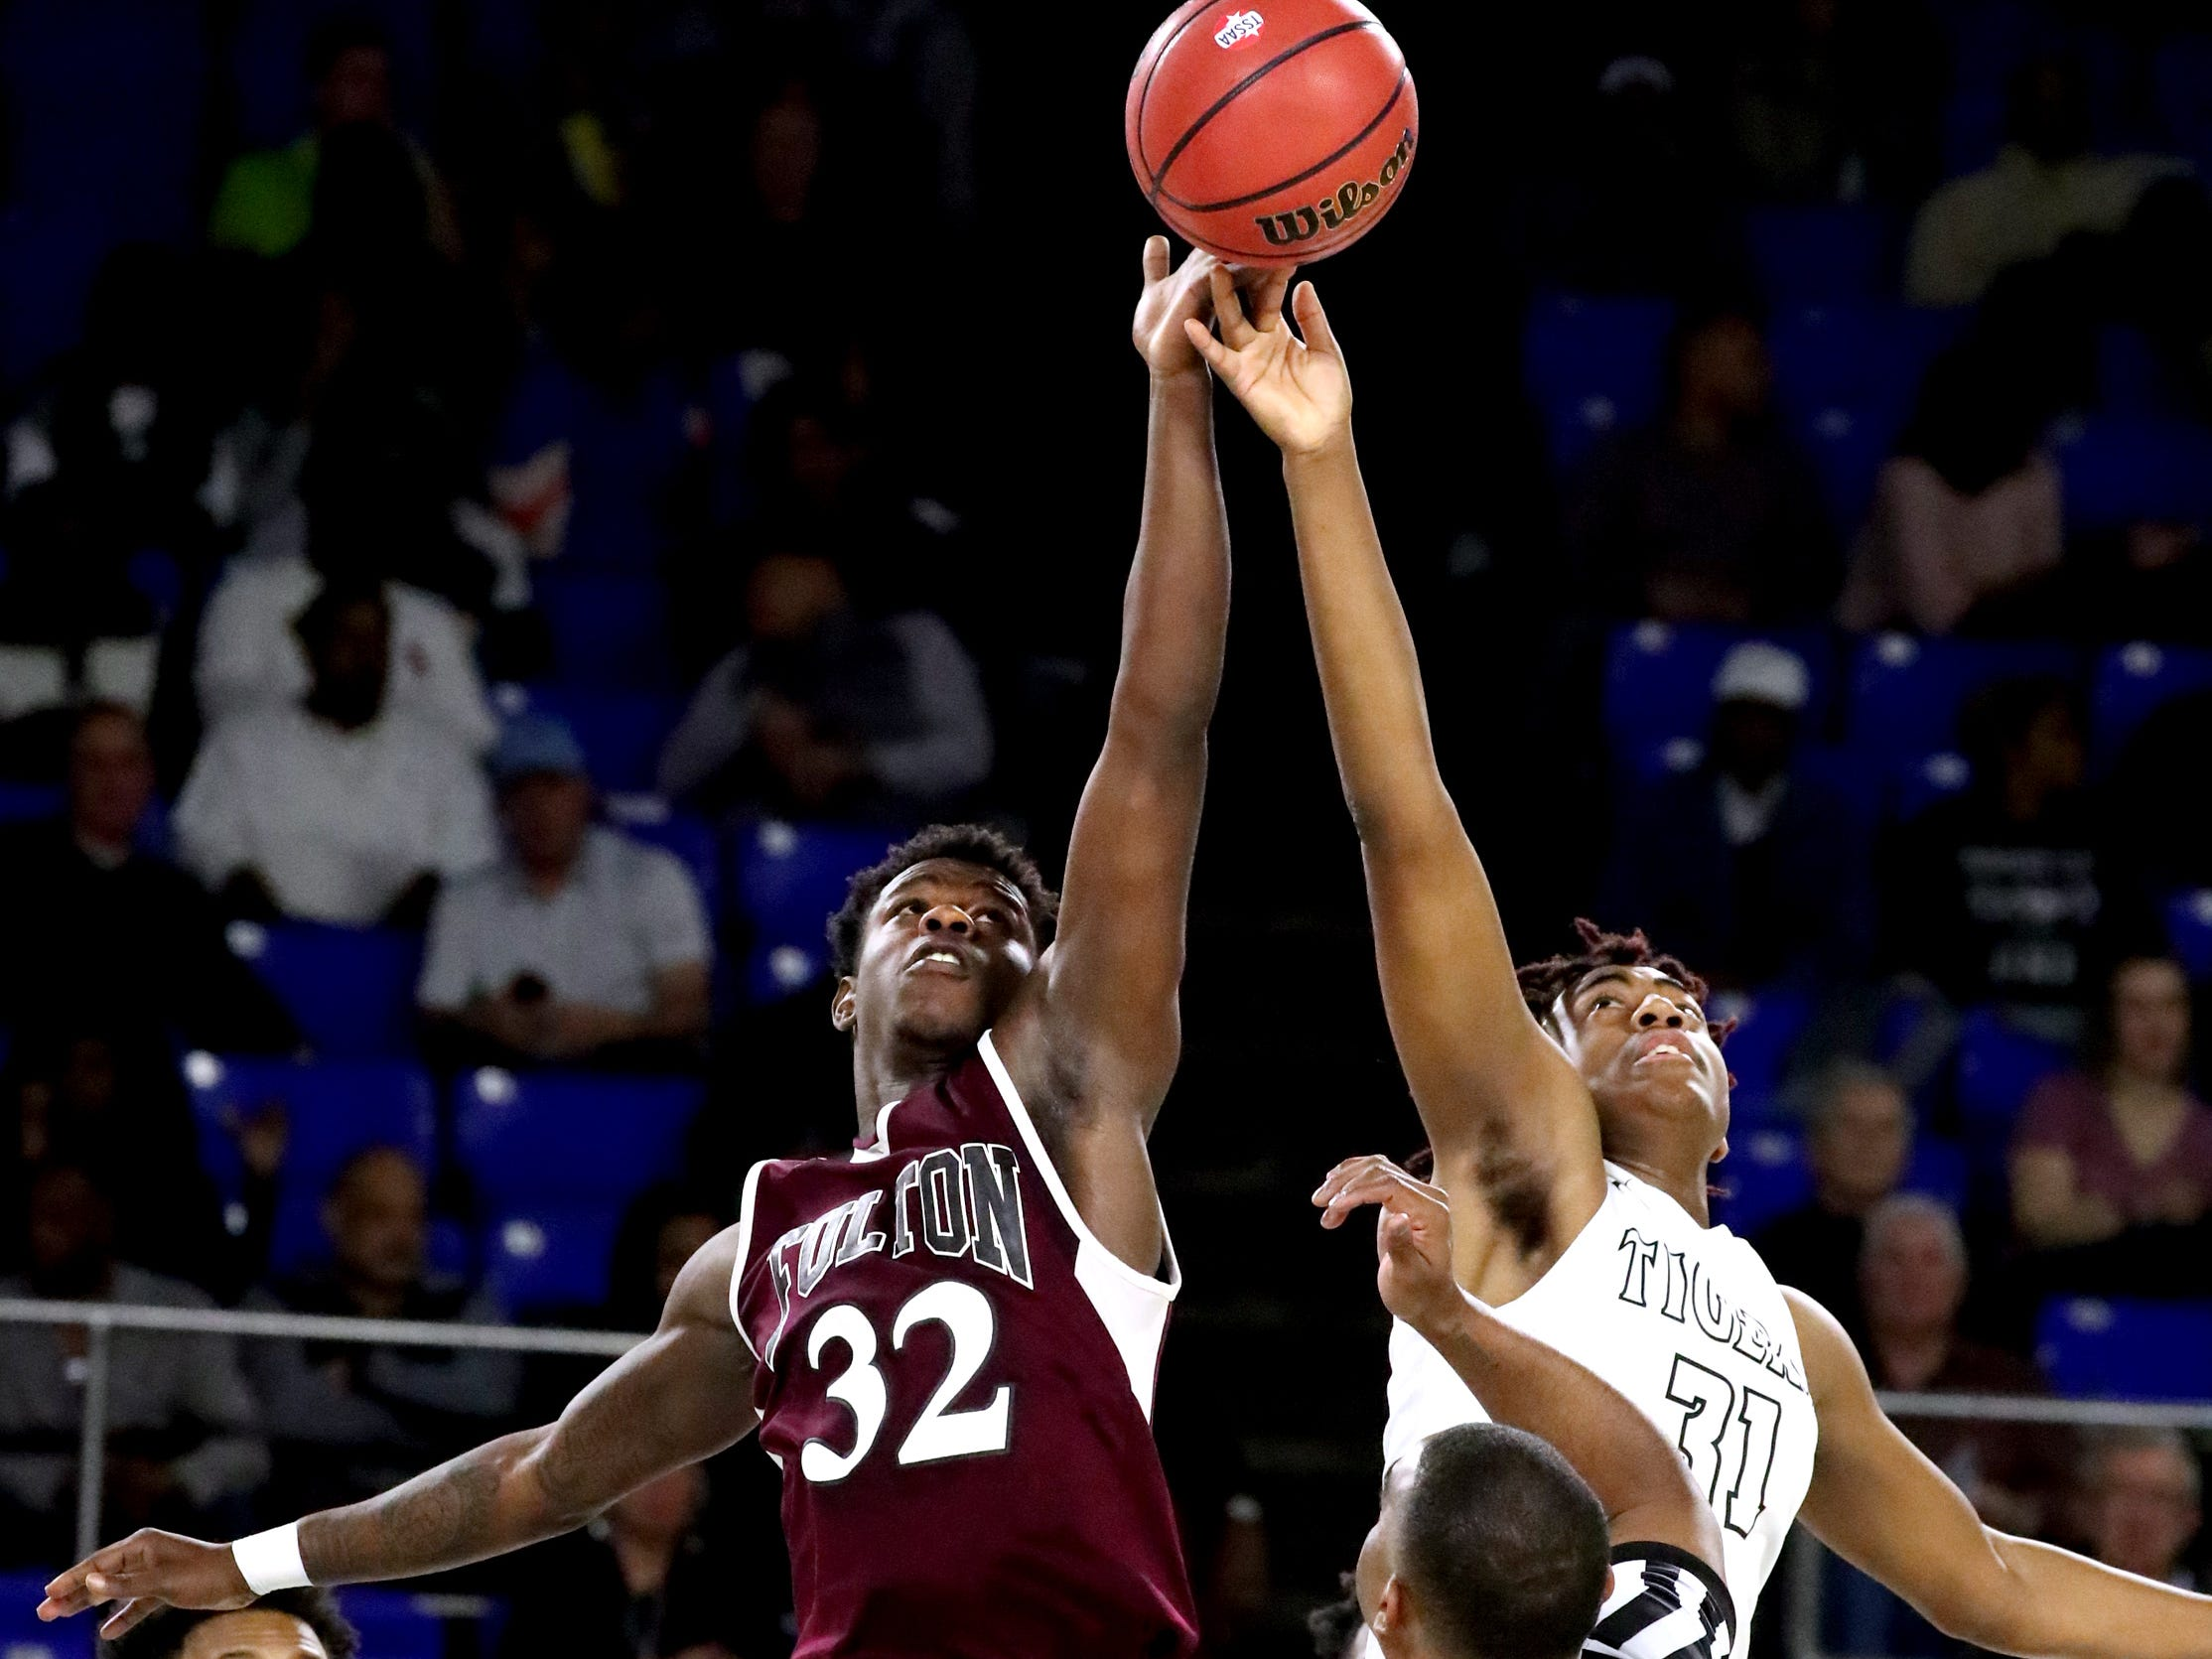 Fulton's Deshaun Page (32) and Mitchell's Justin Austin (31) jump the ball to start the game during the quarterfinal round of the TSSAA Class AA Boys State Tournament, on Wednesday, March 13, 2019, at Murphy Center in Murfreesboro, Tenn.